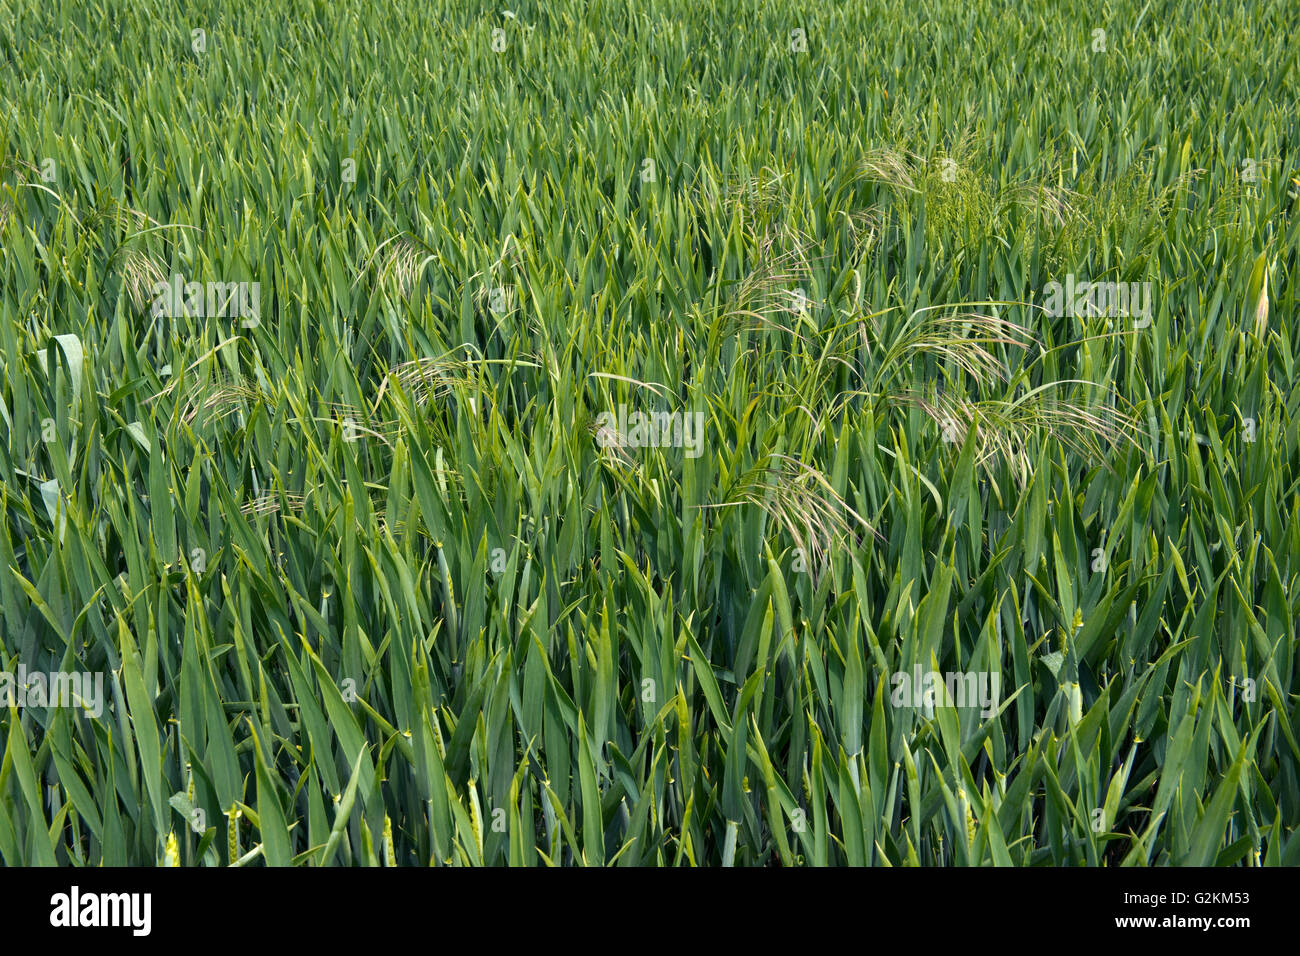 Sterile or barren brome, Bromus sterilis, flower spikes of  grass weeds in a winter wheat crop, May - Stock Image